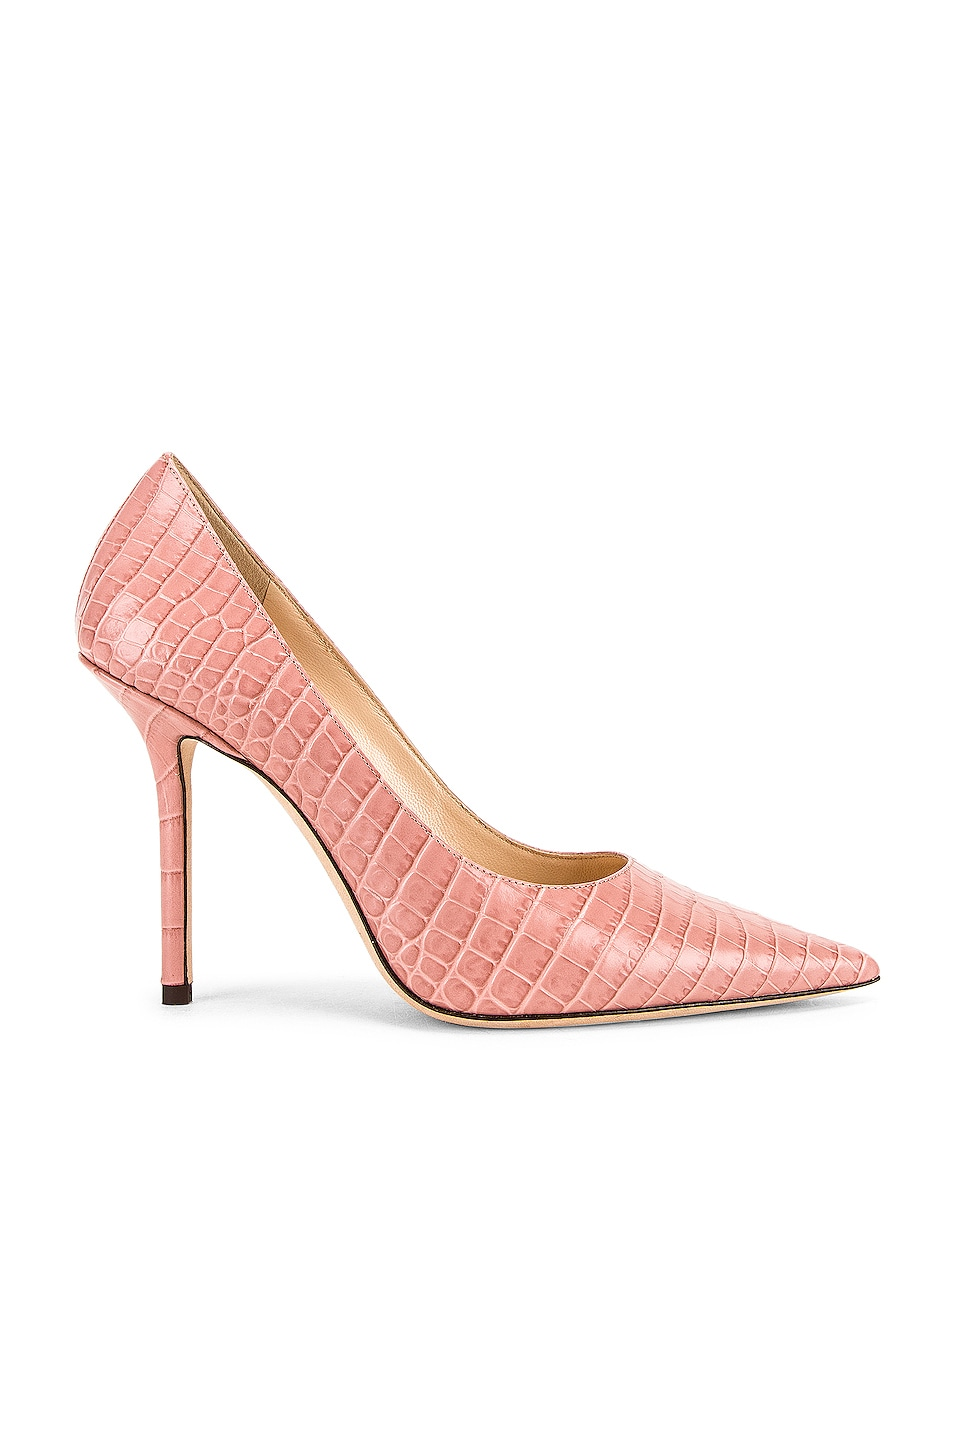 Image 1 of Jimmy Choo Love 100 Croc Embossed Leather Heel in Blush